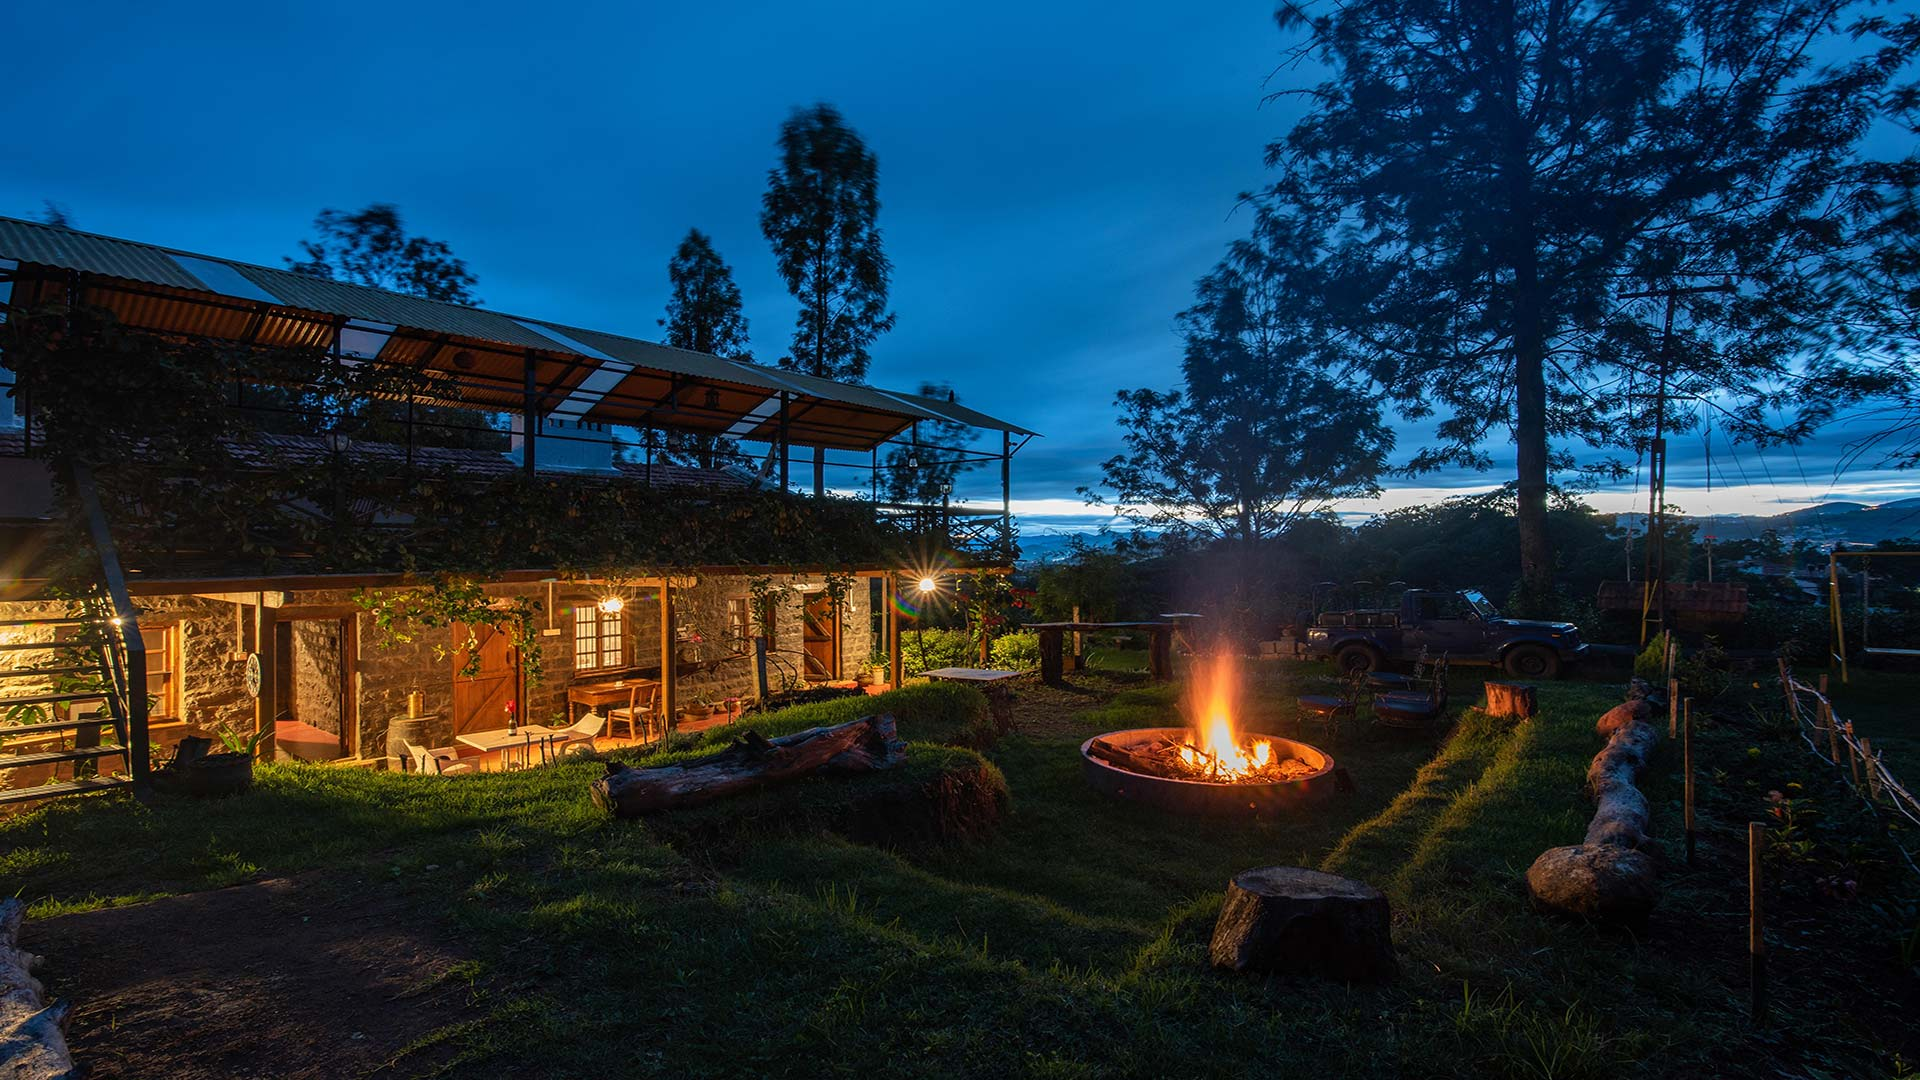 Bonfire in outdoor space of holiday villa